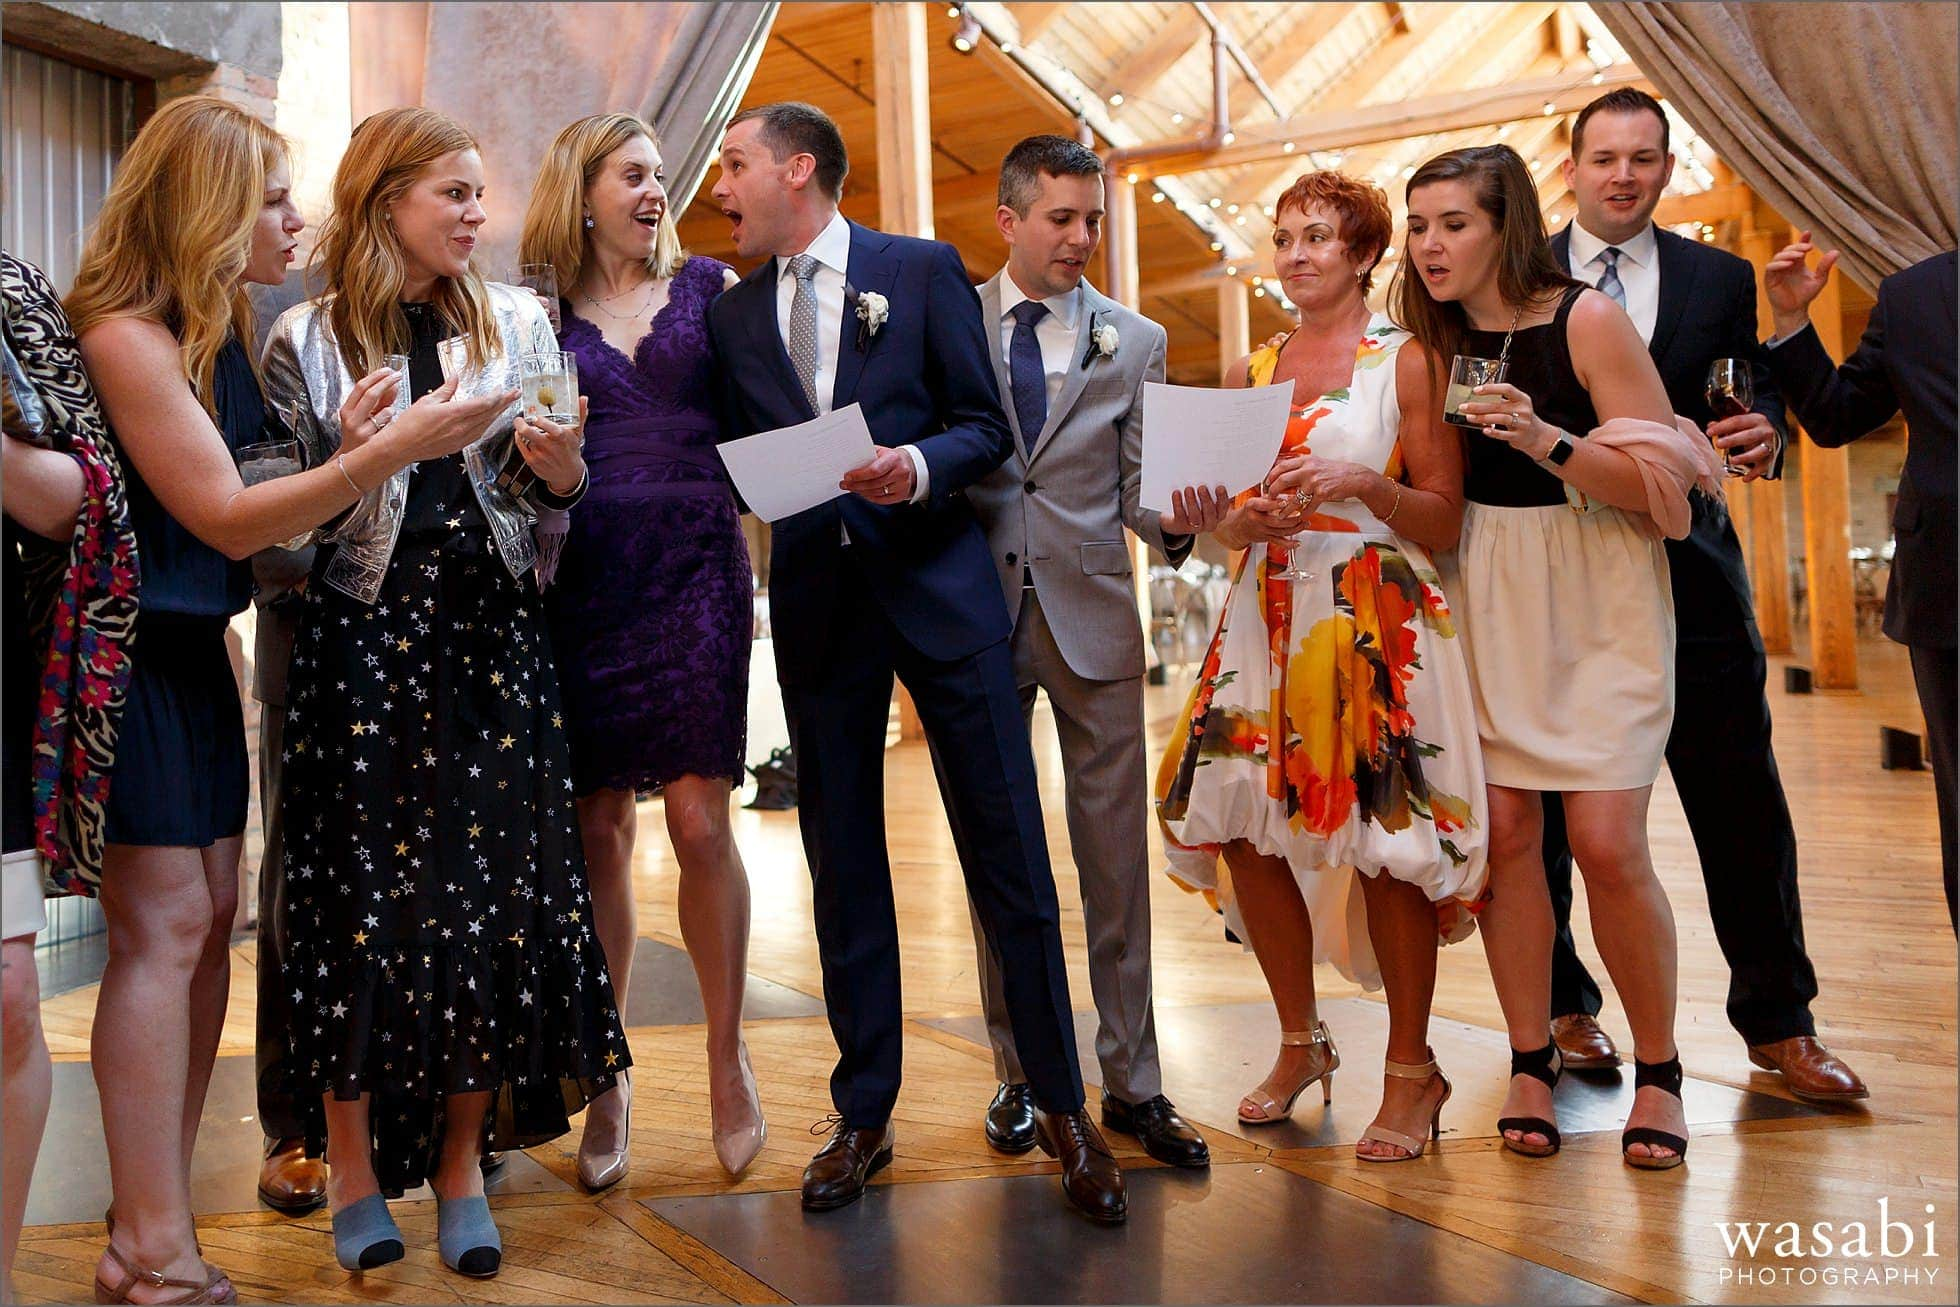 grooms sing Mack the Knife with guests during their Bridgeport Art Center Skyline Loft wedding reception